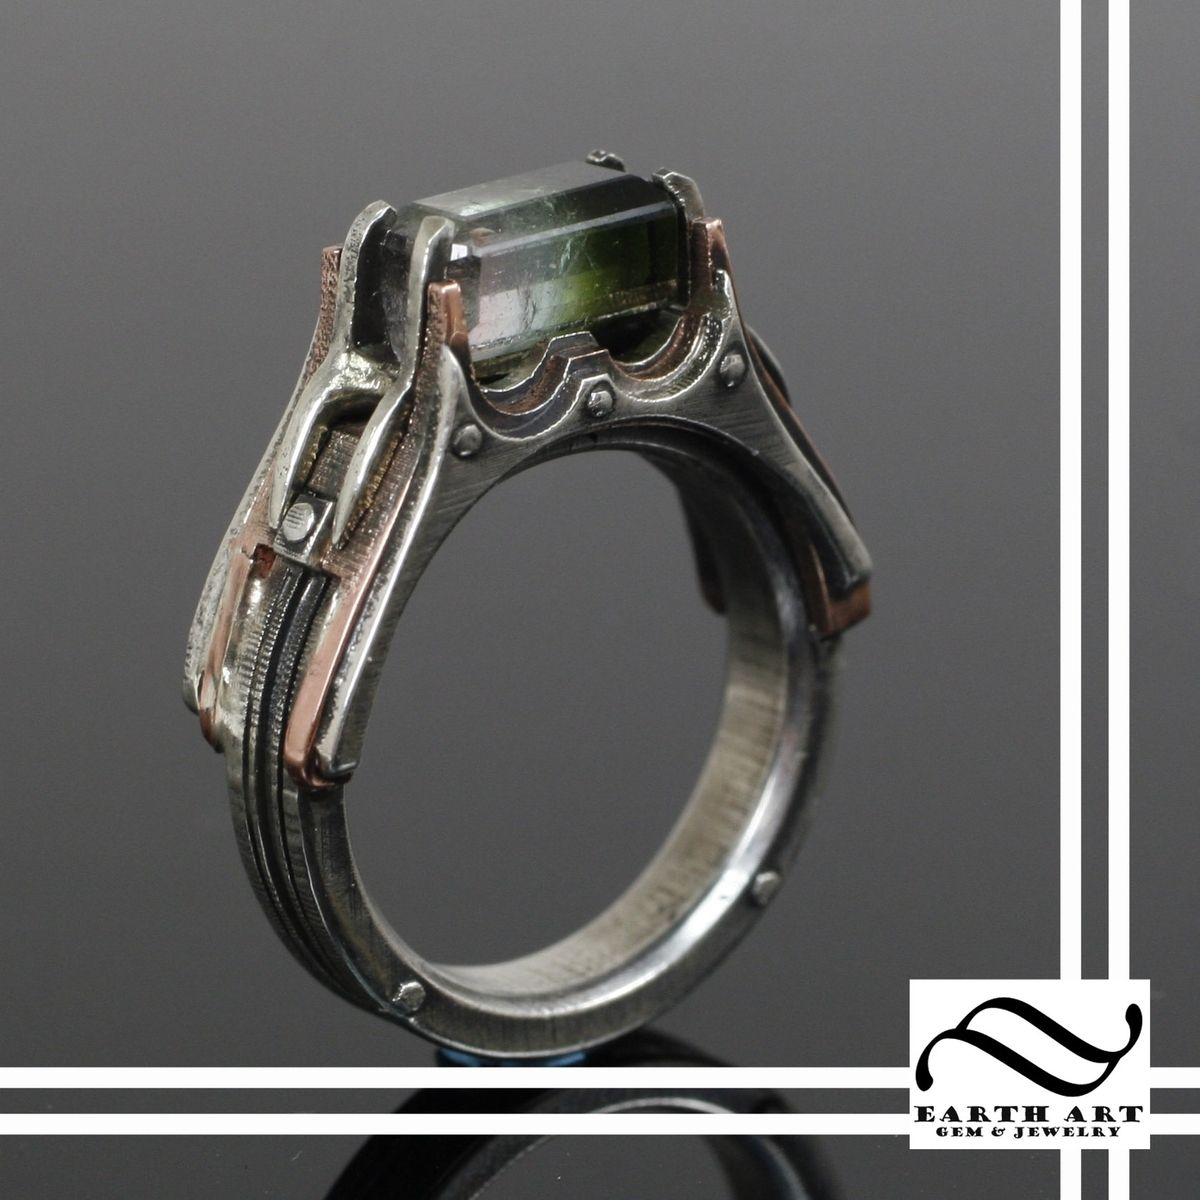 Hand Crafted Wedding Rings: Handmade Watermelon Steampunk Engagement Ring By Earth Art